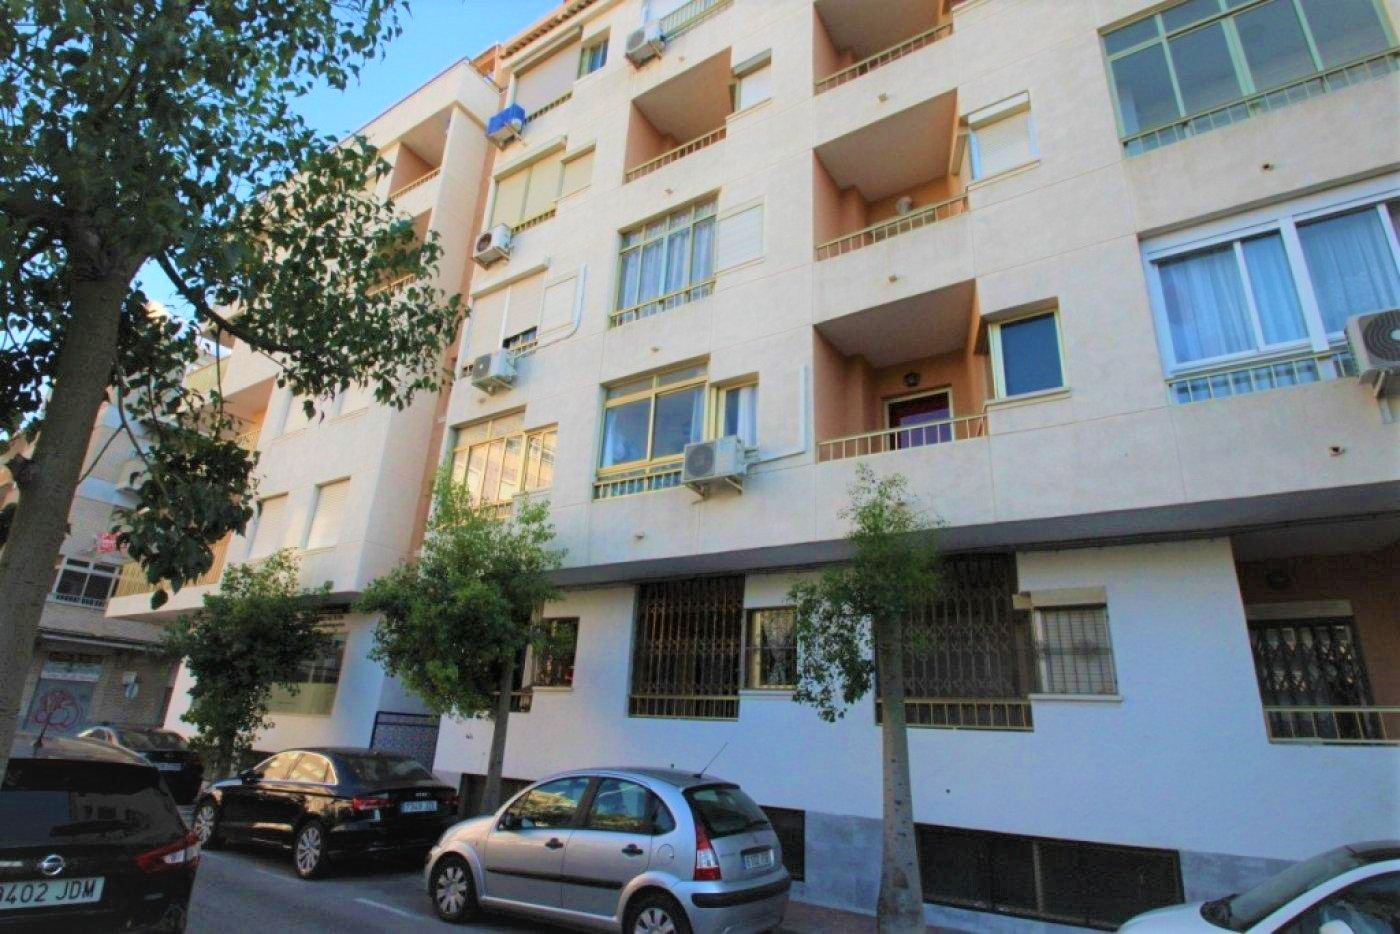 Studio in Torrevieja close to the beach.